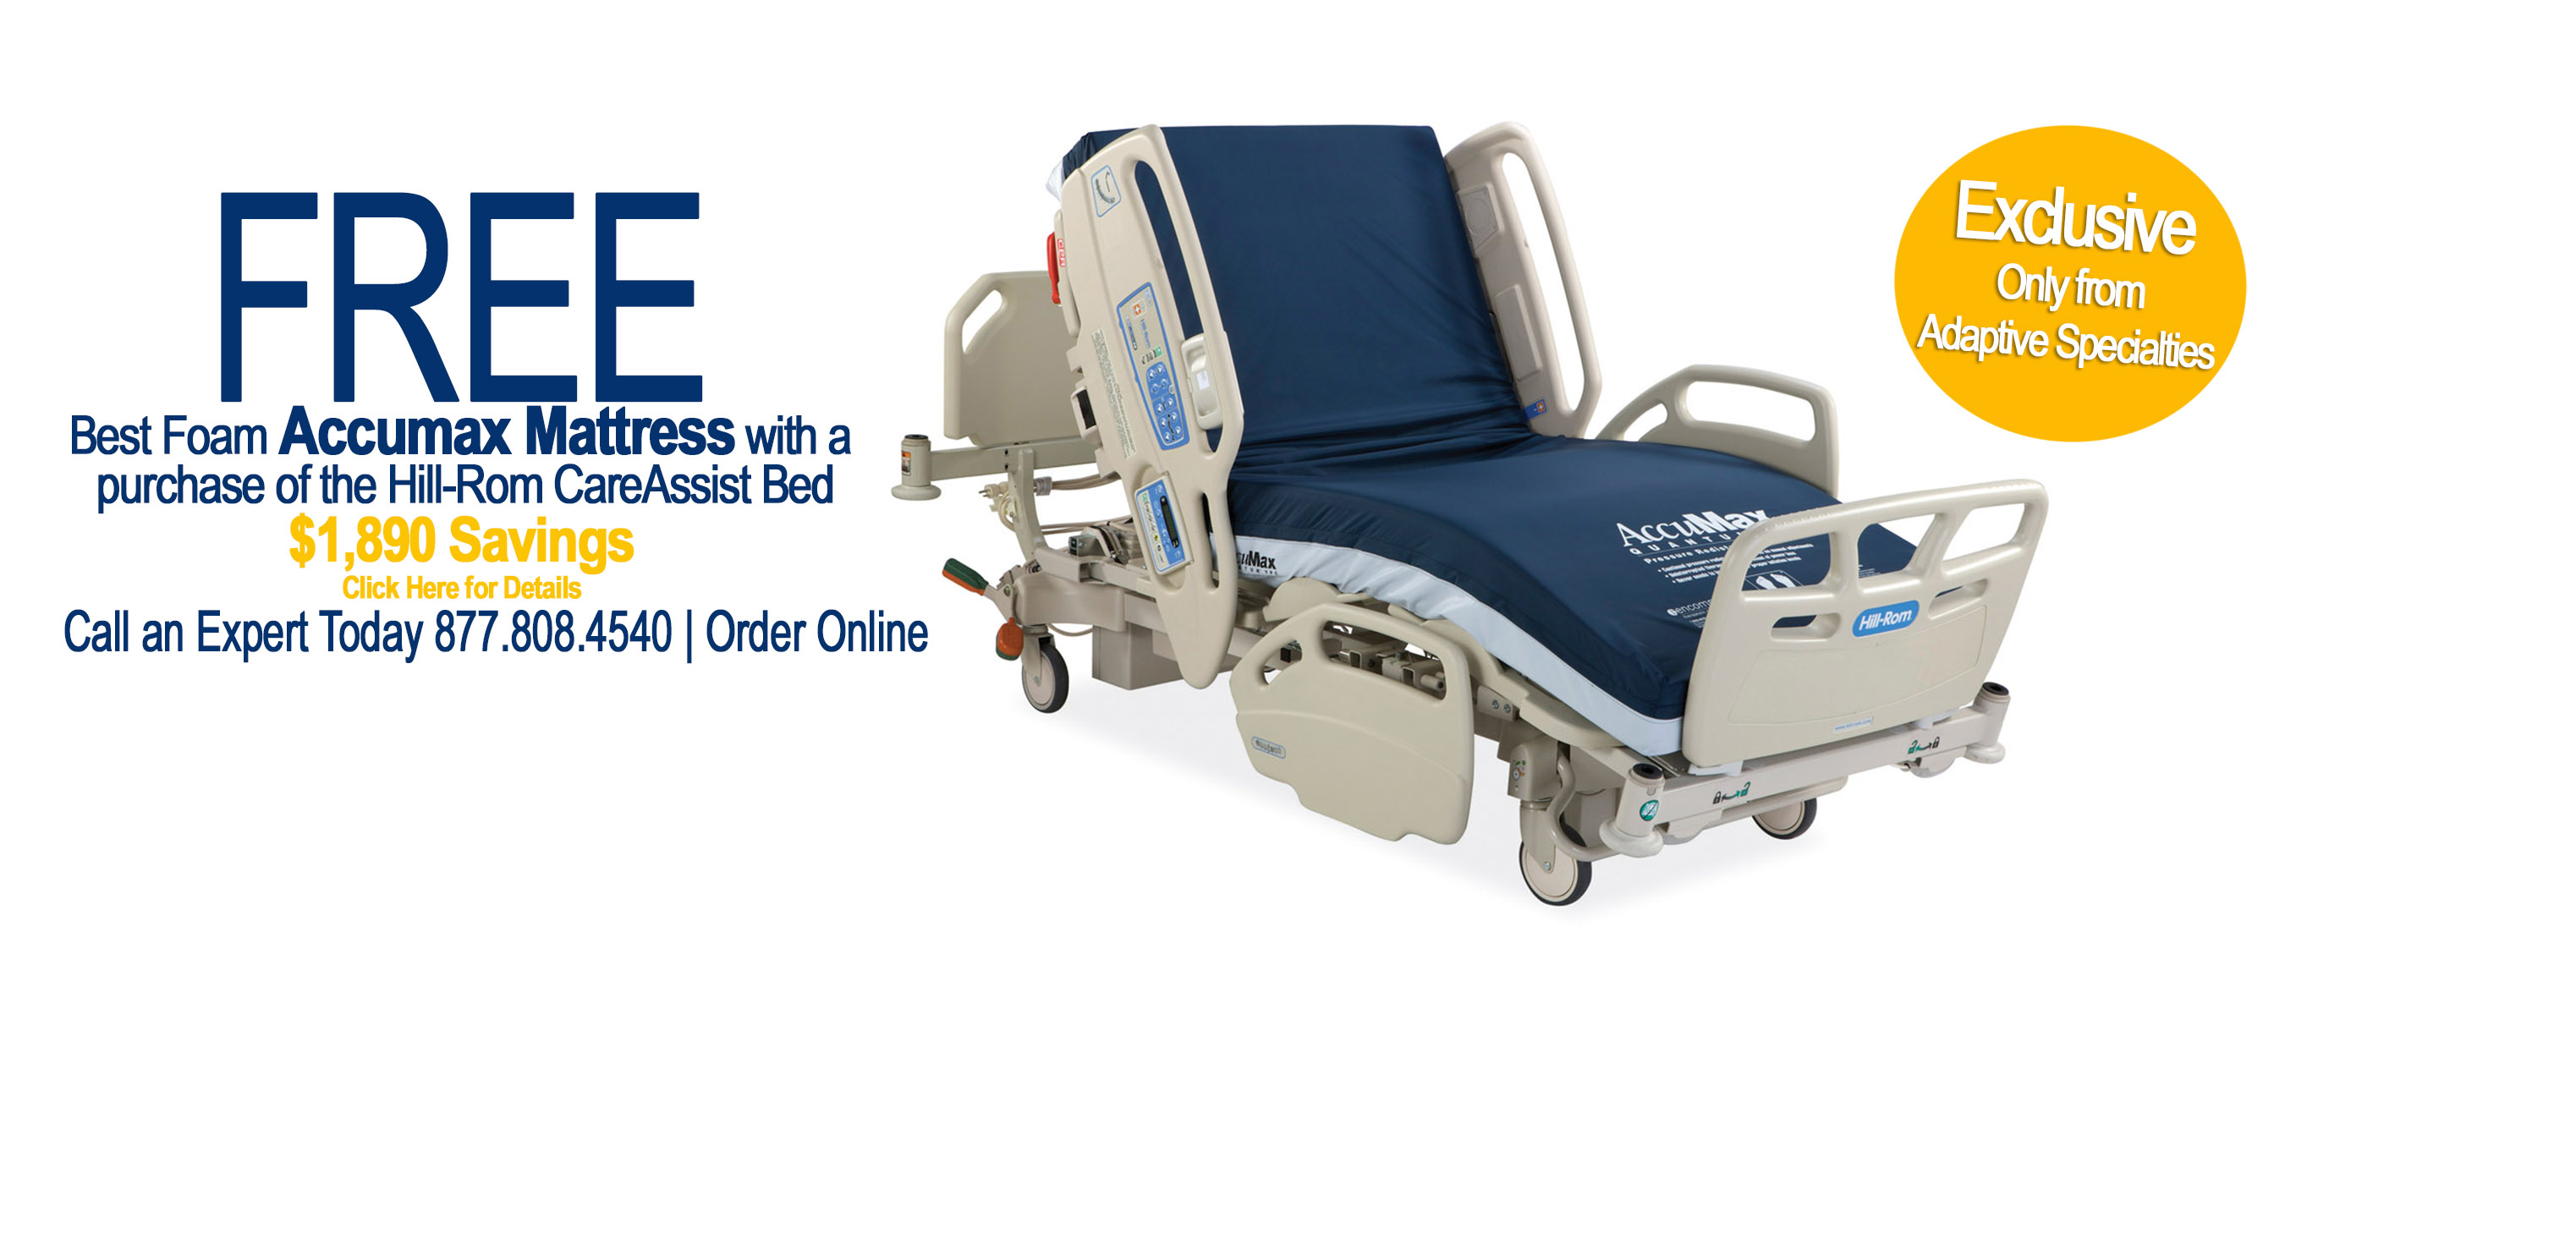 Exclusive Sale - Free Accumax with CareAssist